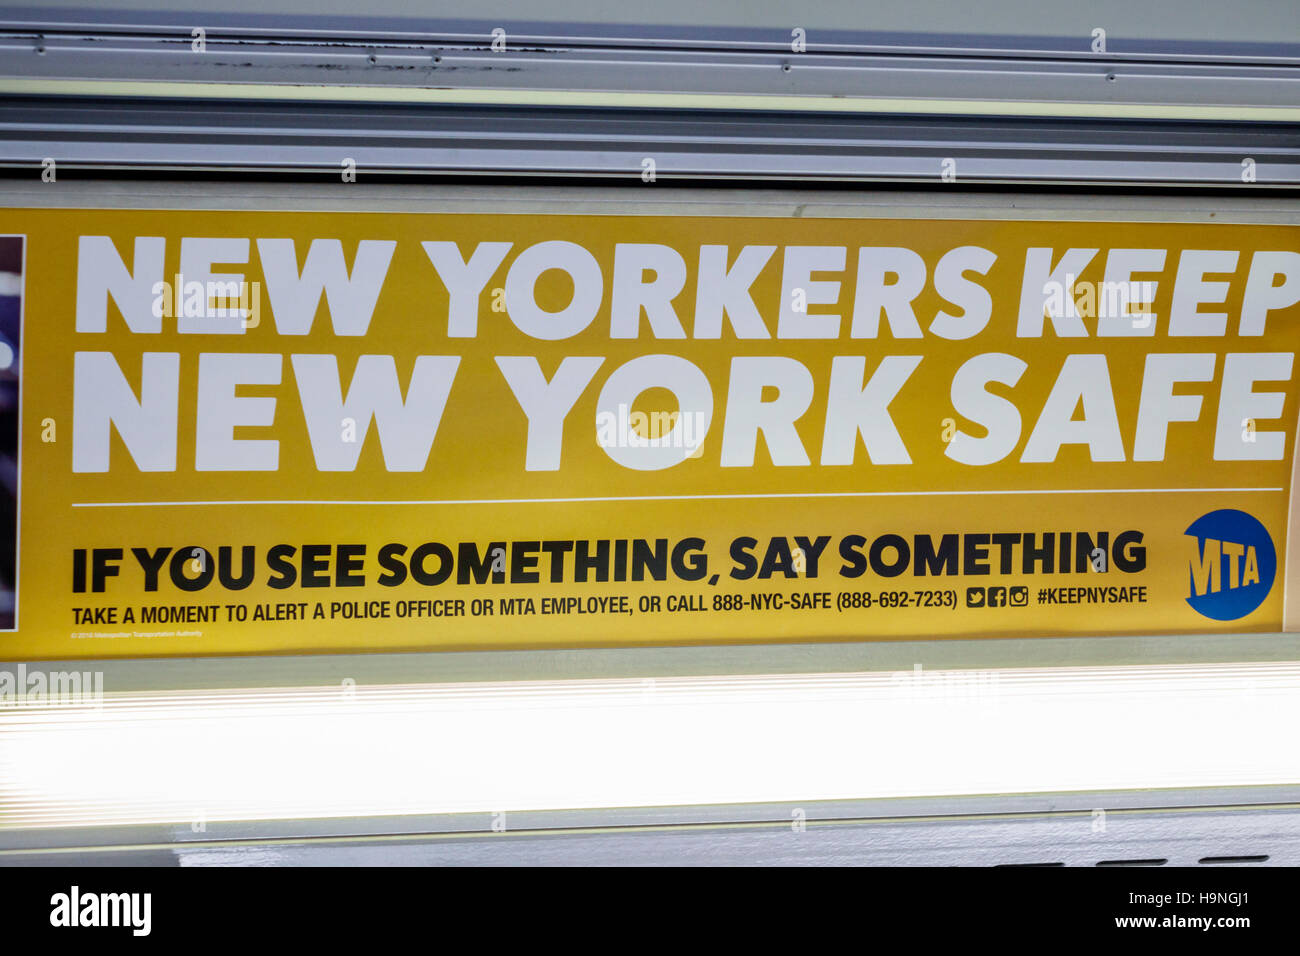 Manhattan New York City NYC NY sign bus billboard ad public safety reporting crime New Yorkers Keep New York Safe - Stock Image